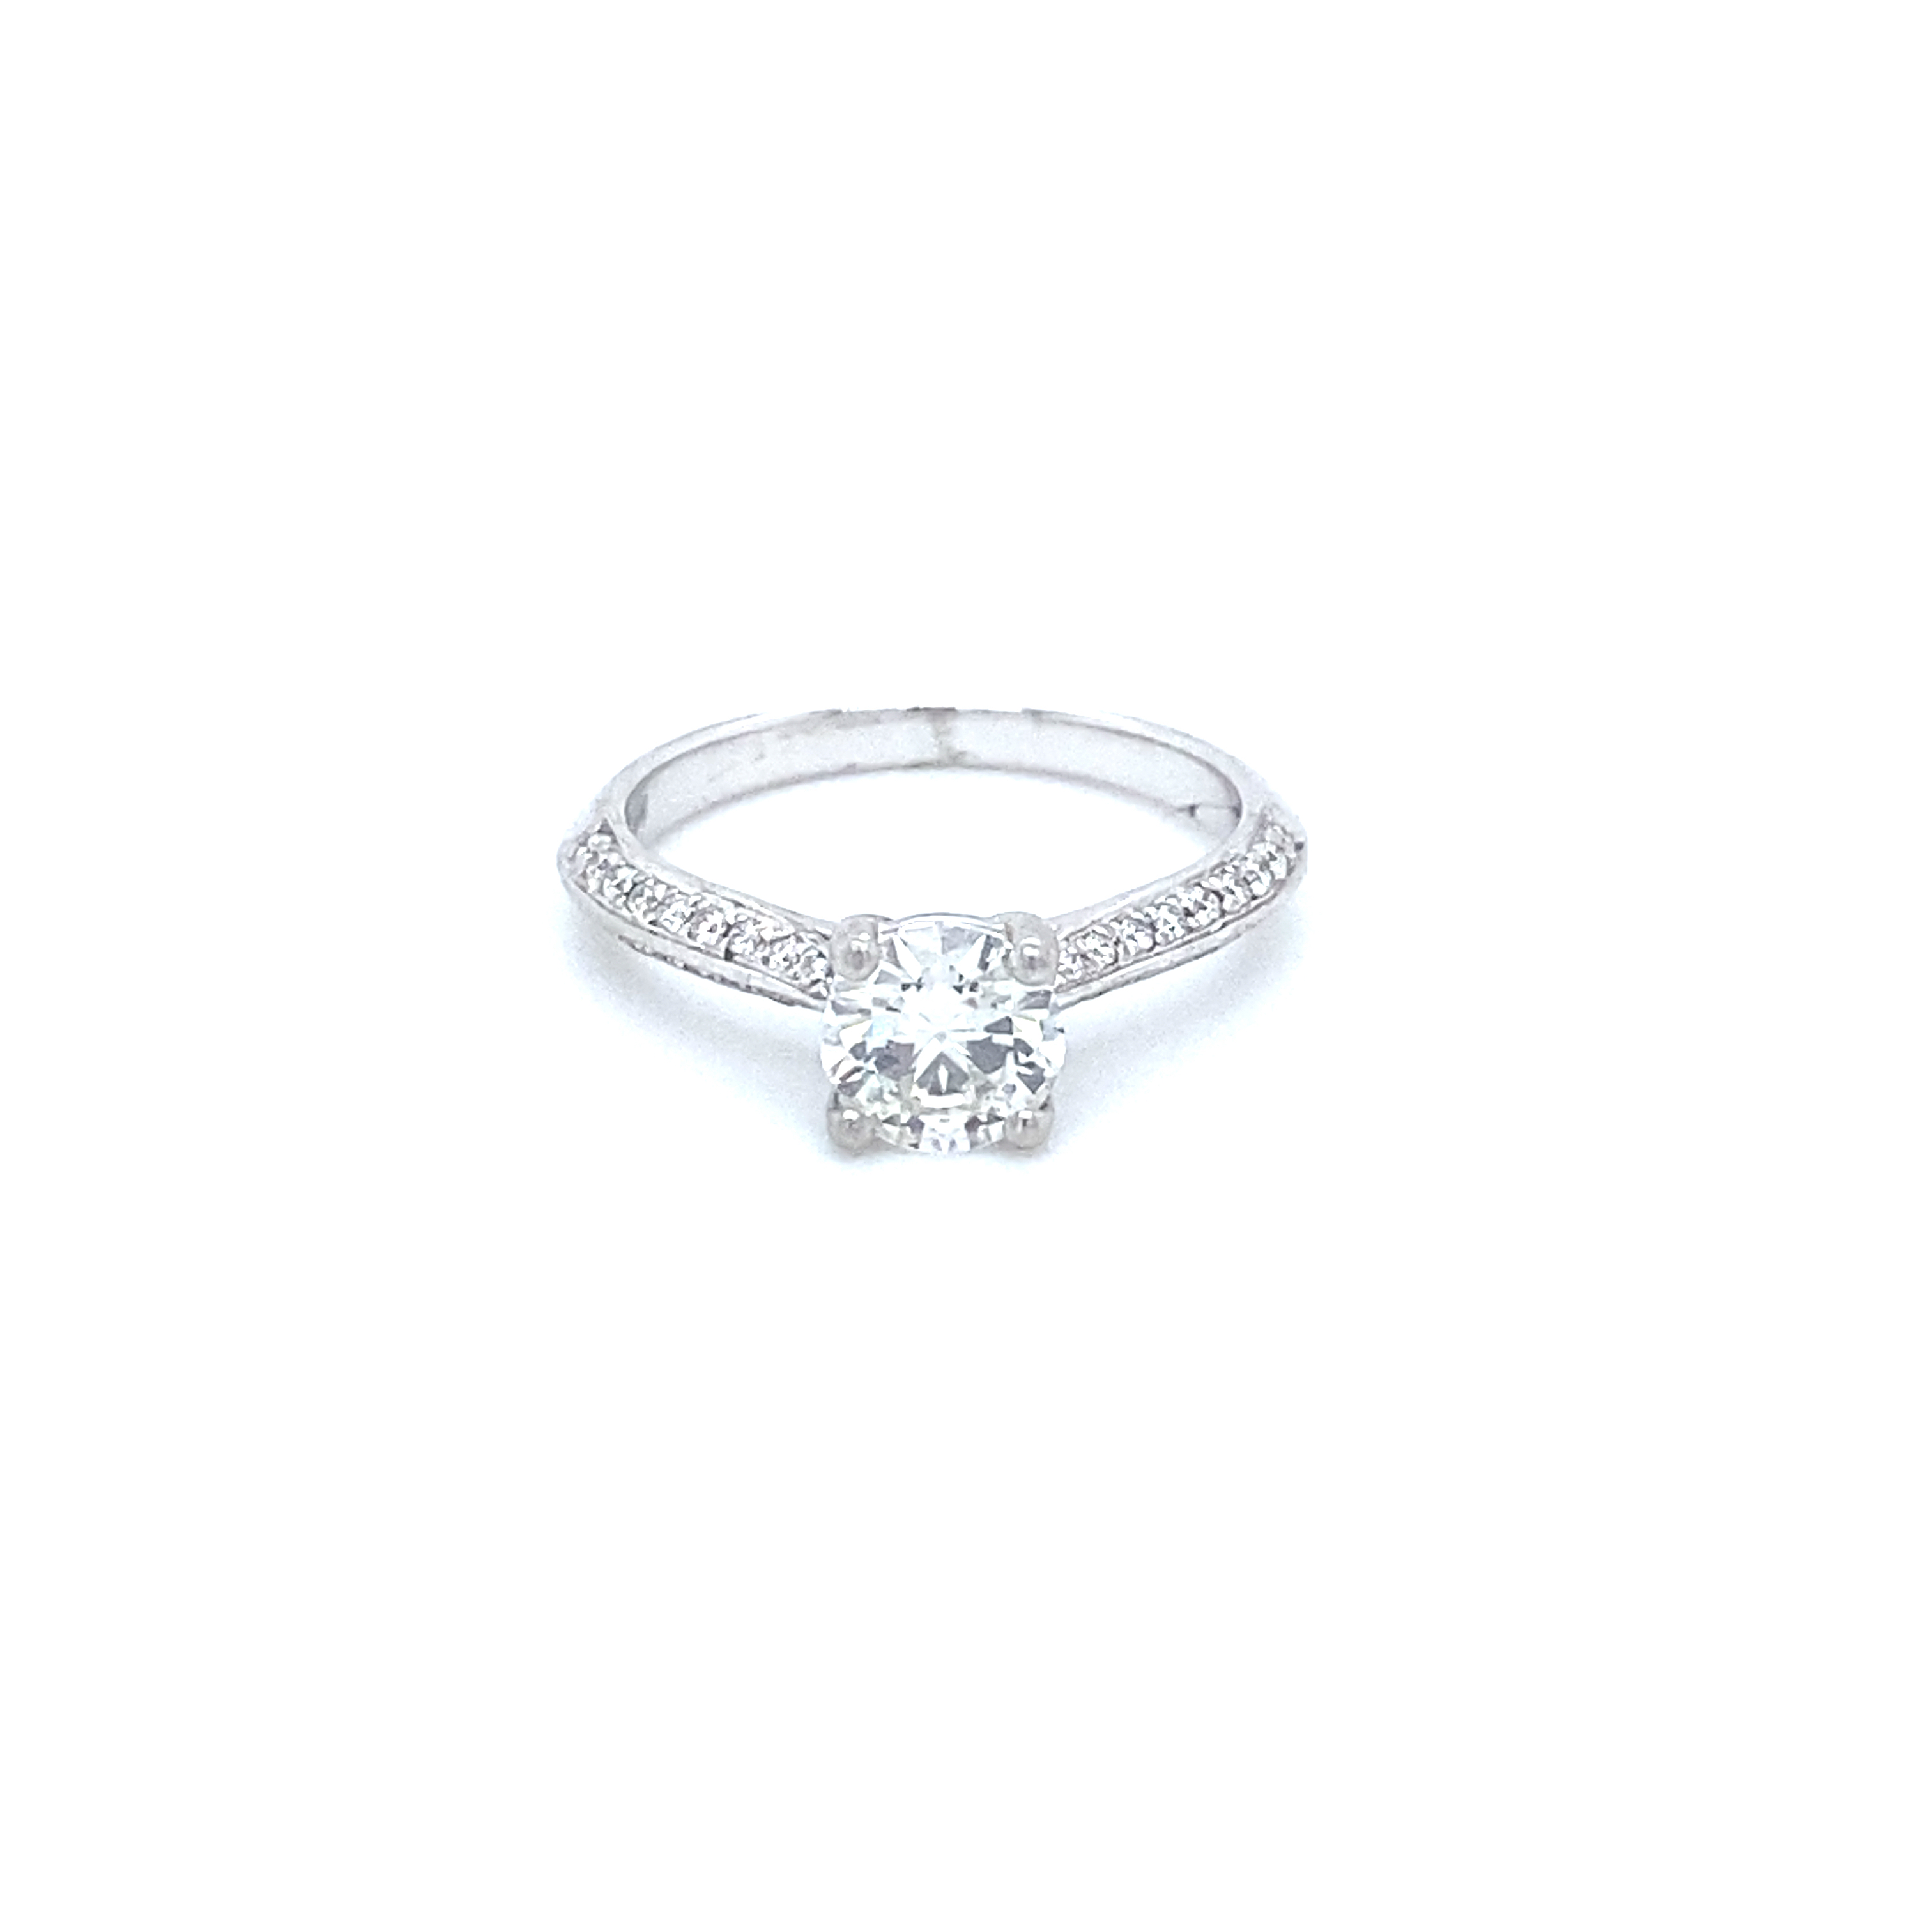 A diamond ring, with pave set diamond shoulders, in platinum